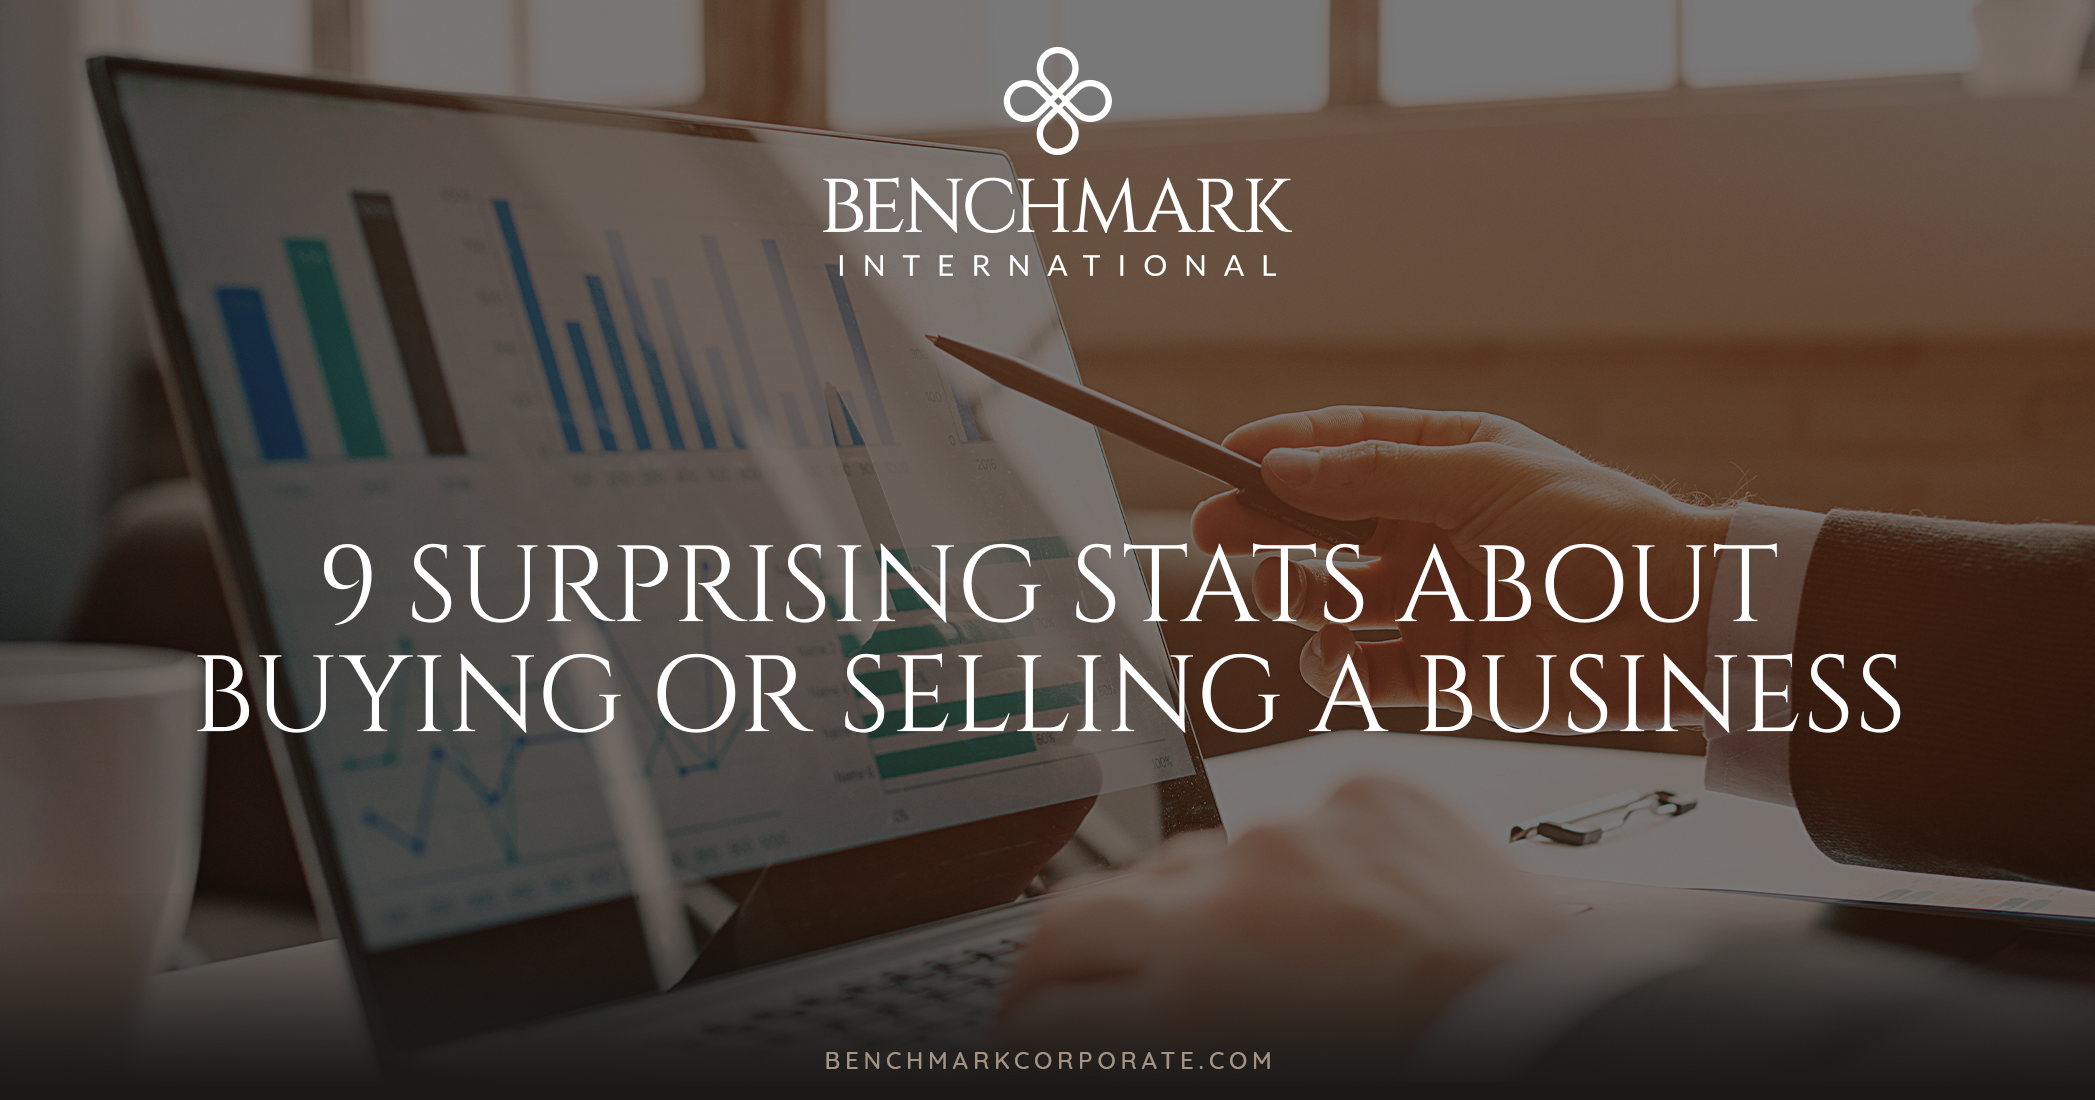 9 Surprising Stats About Buying or Selling a Business